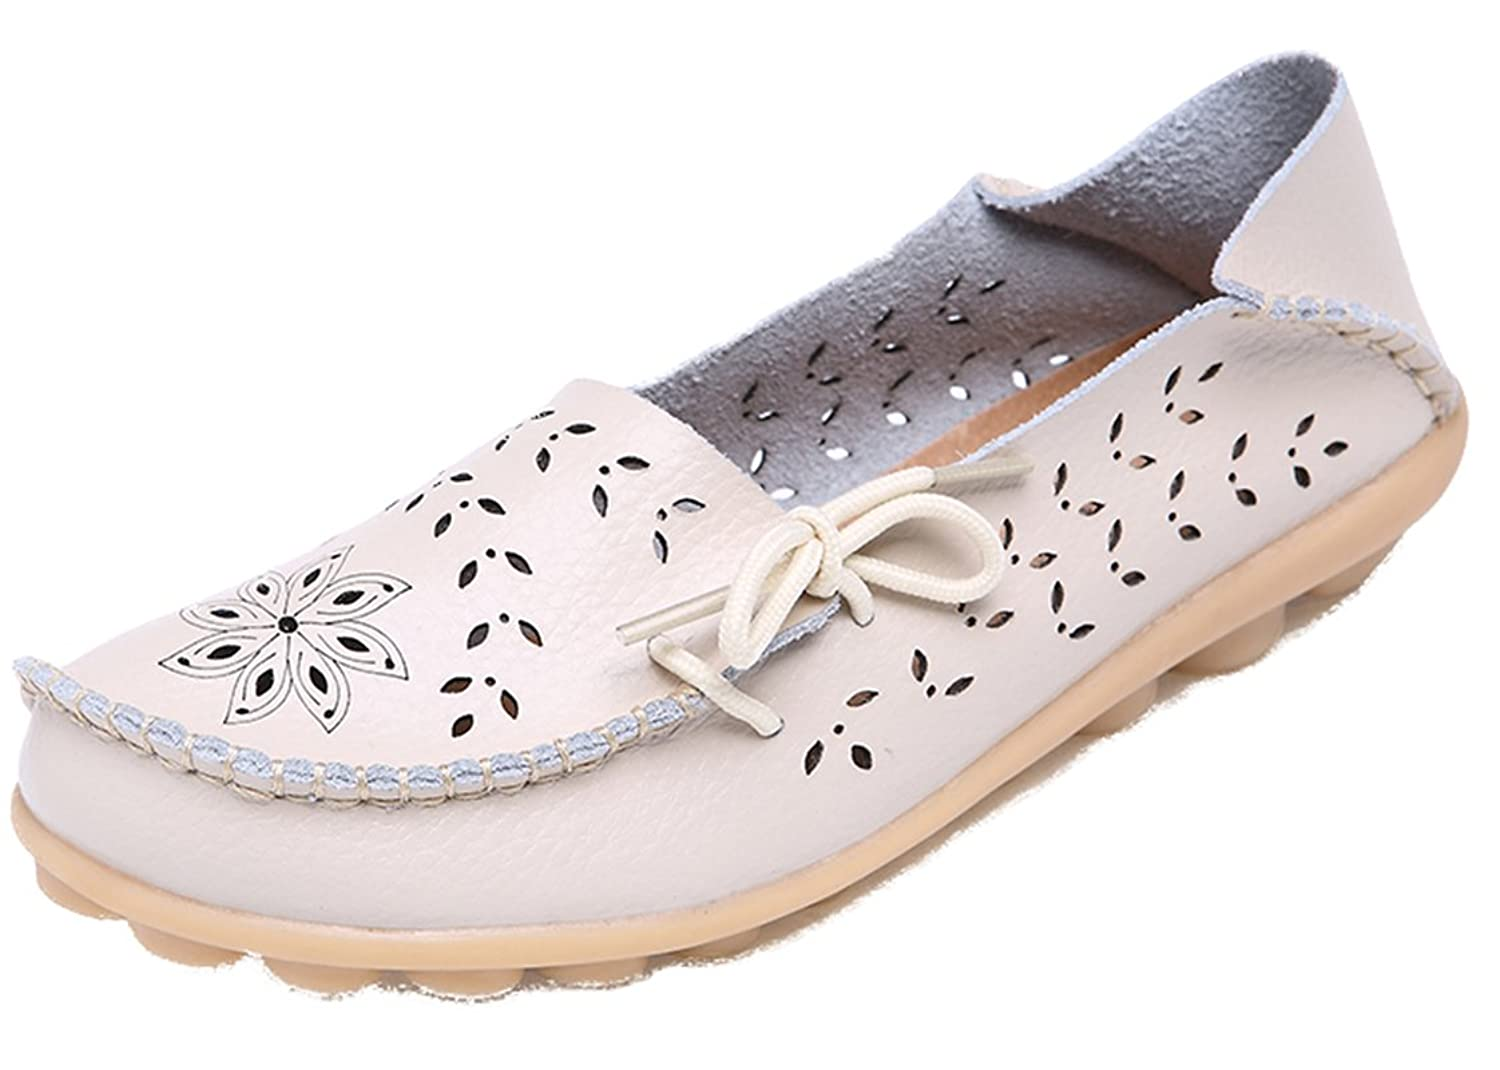 5Sheepgs Women Vintage Style Leather Lace-Up Loafer Flats Pumps